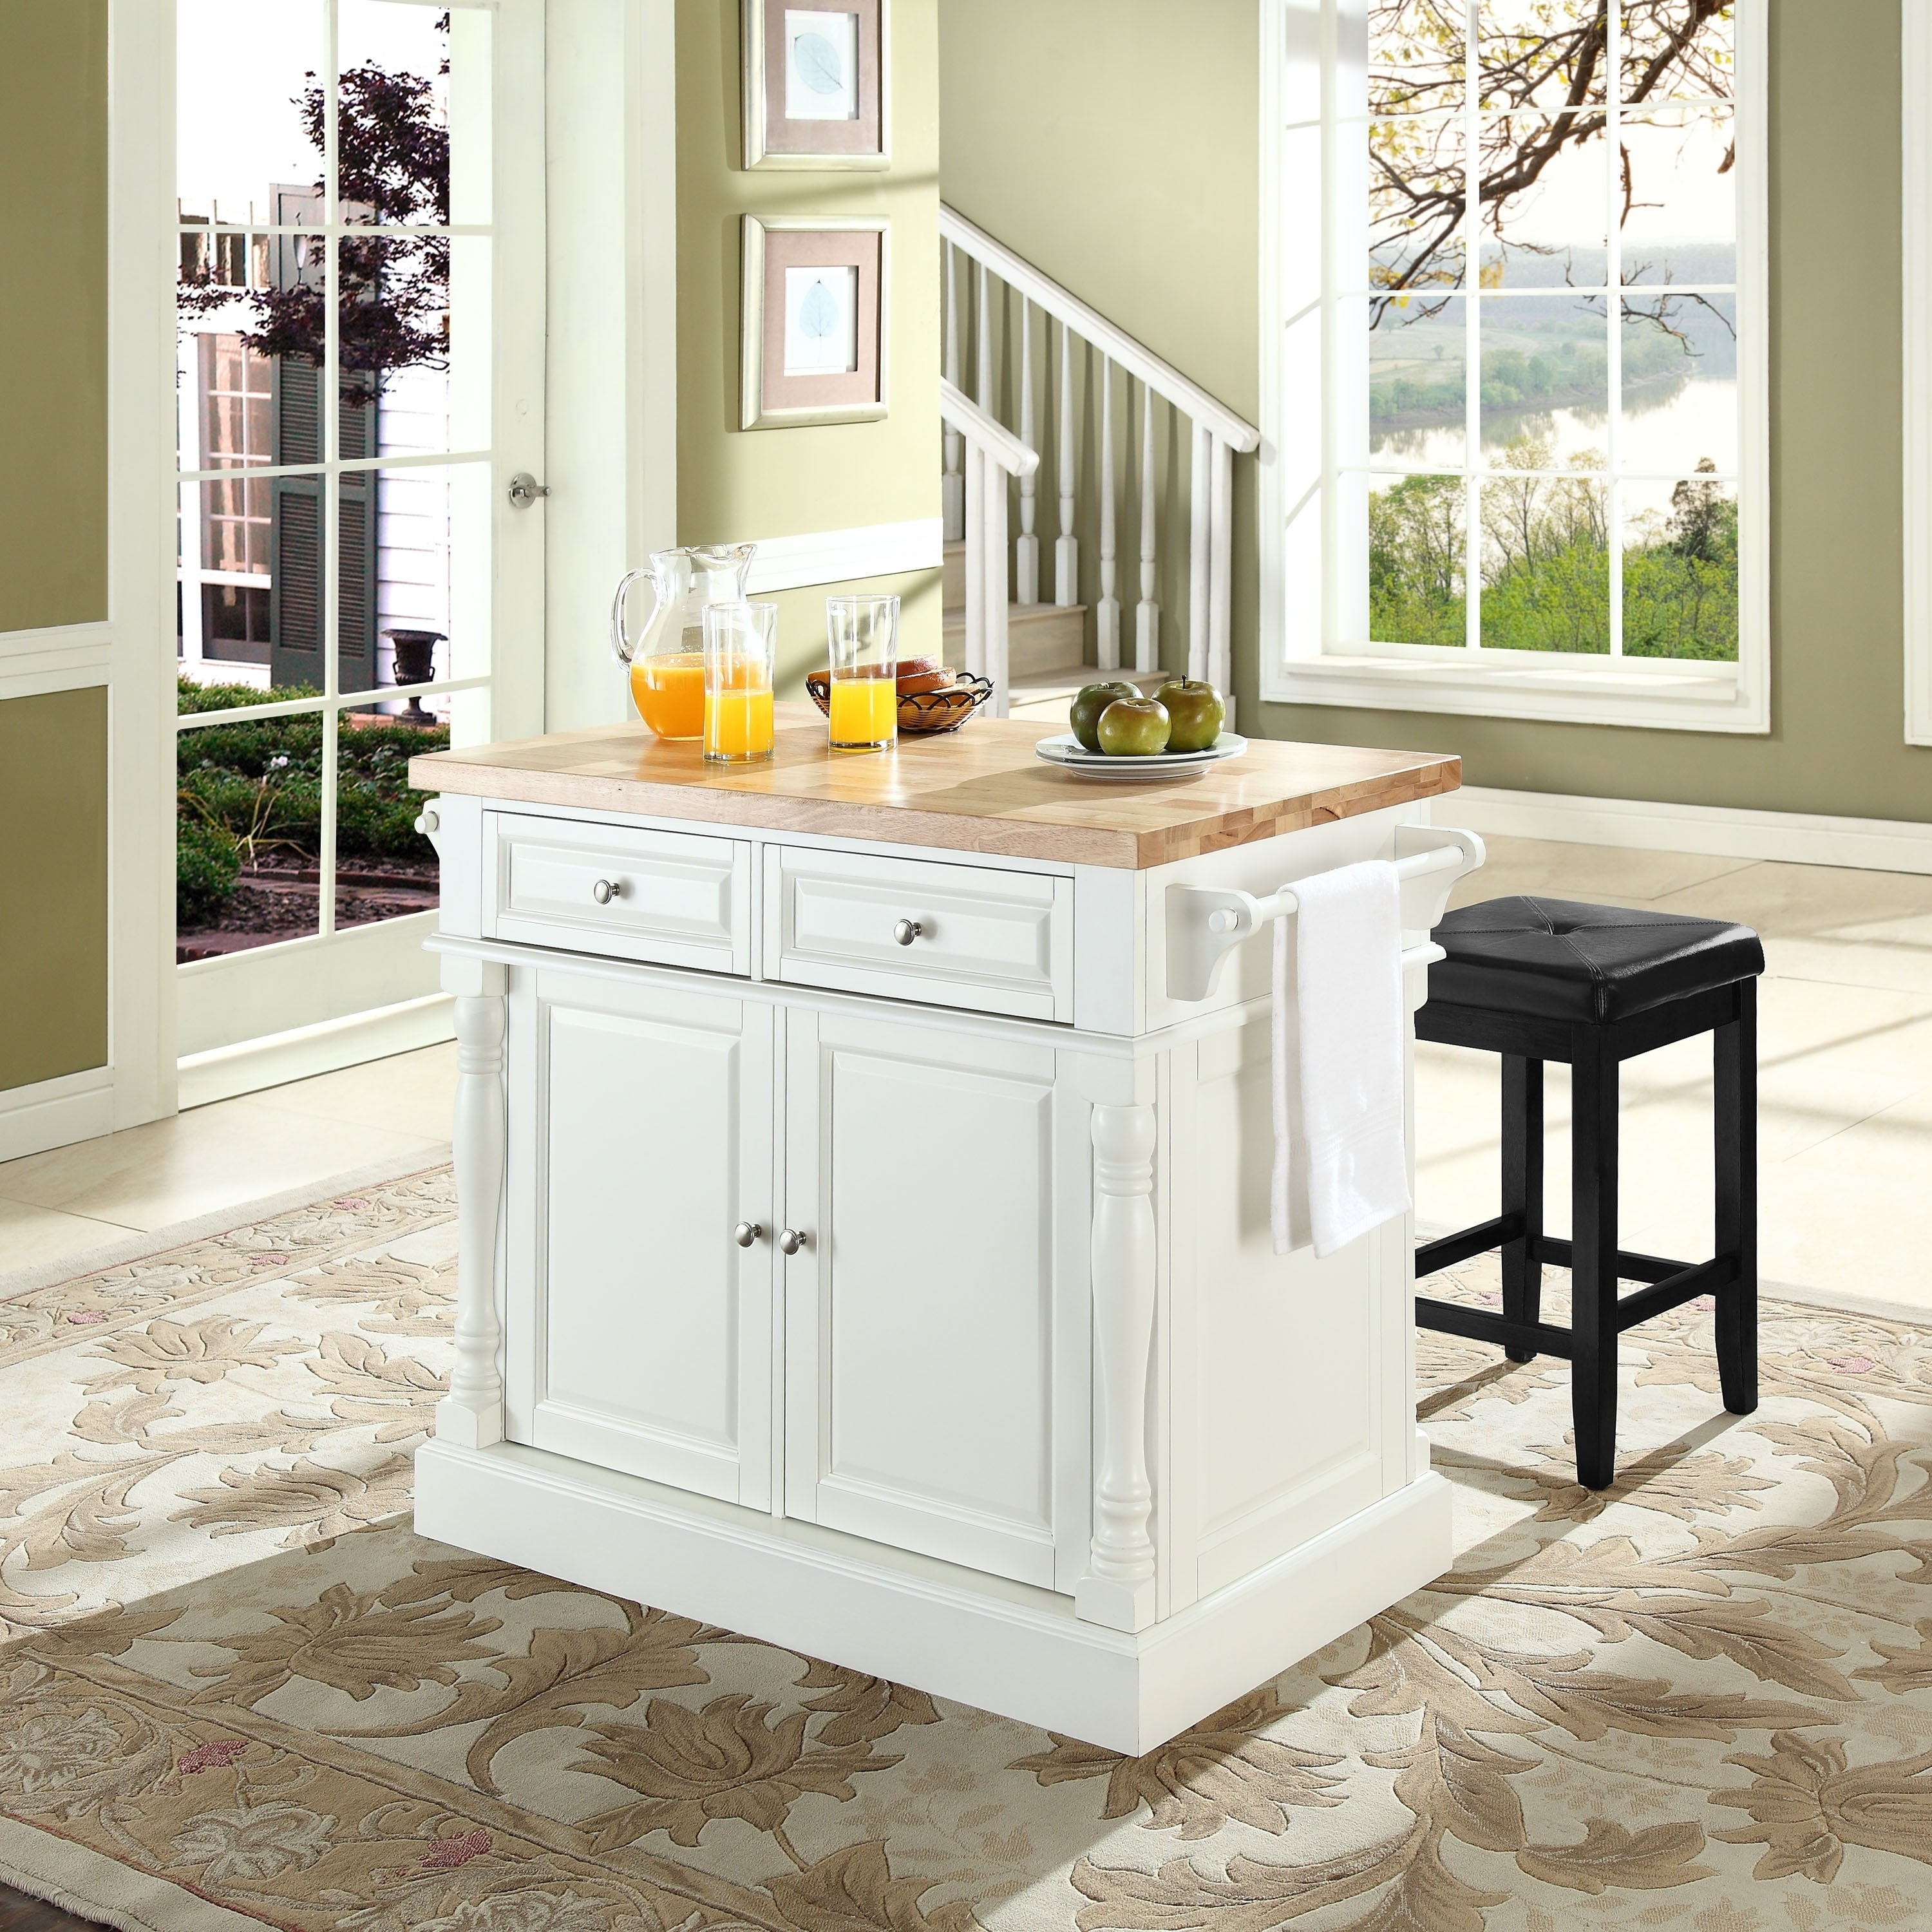 Oxford Butcher Block Top Kitchen Island In White Finish With Stools